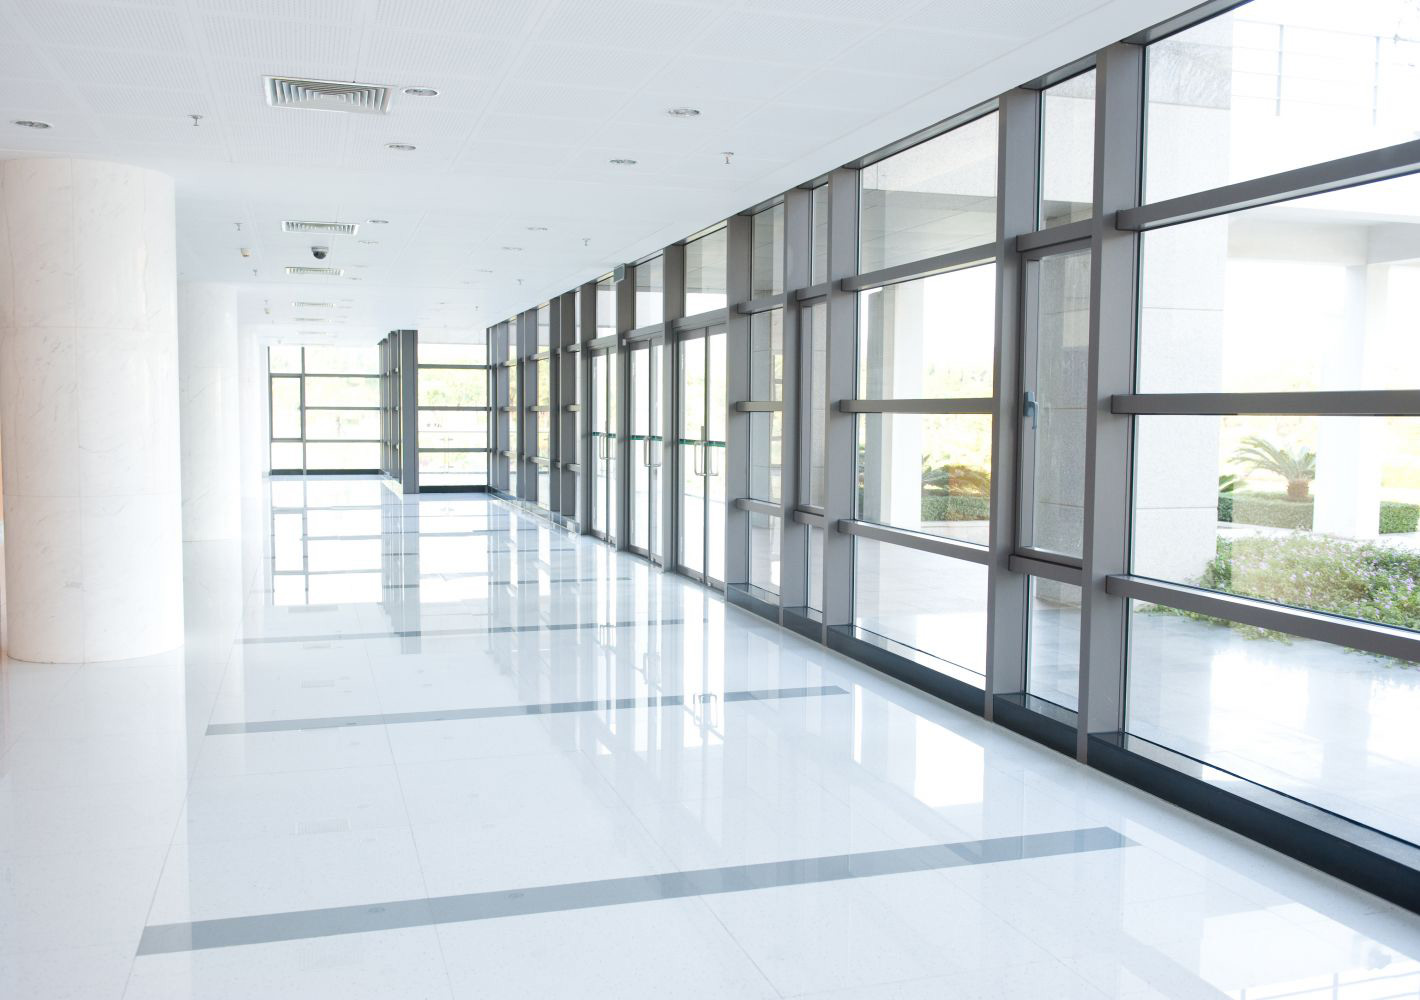 Contract Flooring   Industry | Education | Healthcare   Find Out More